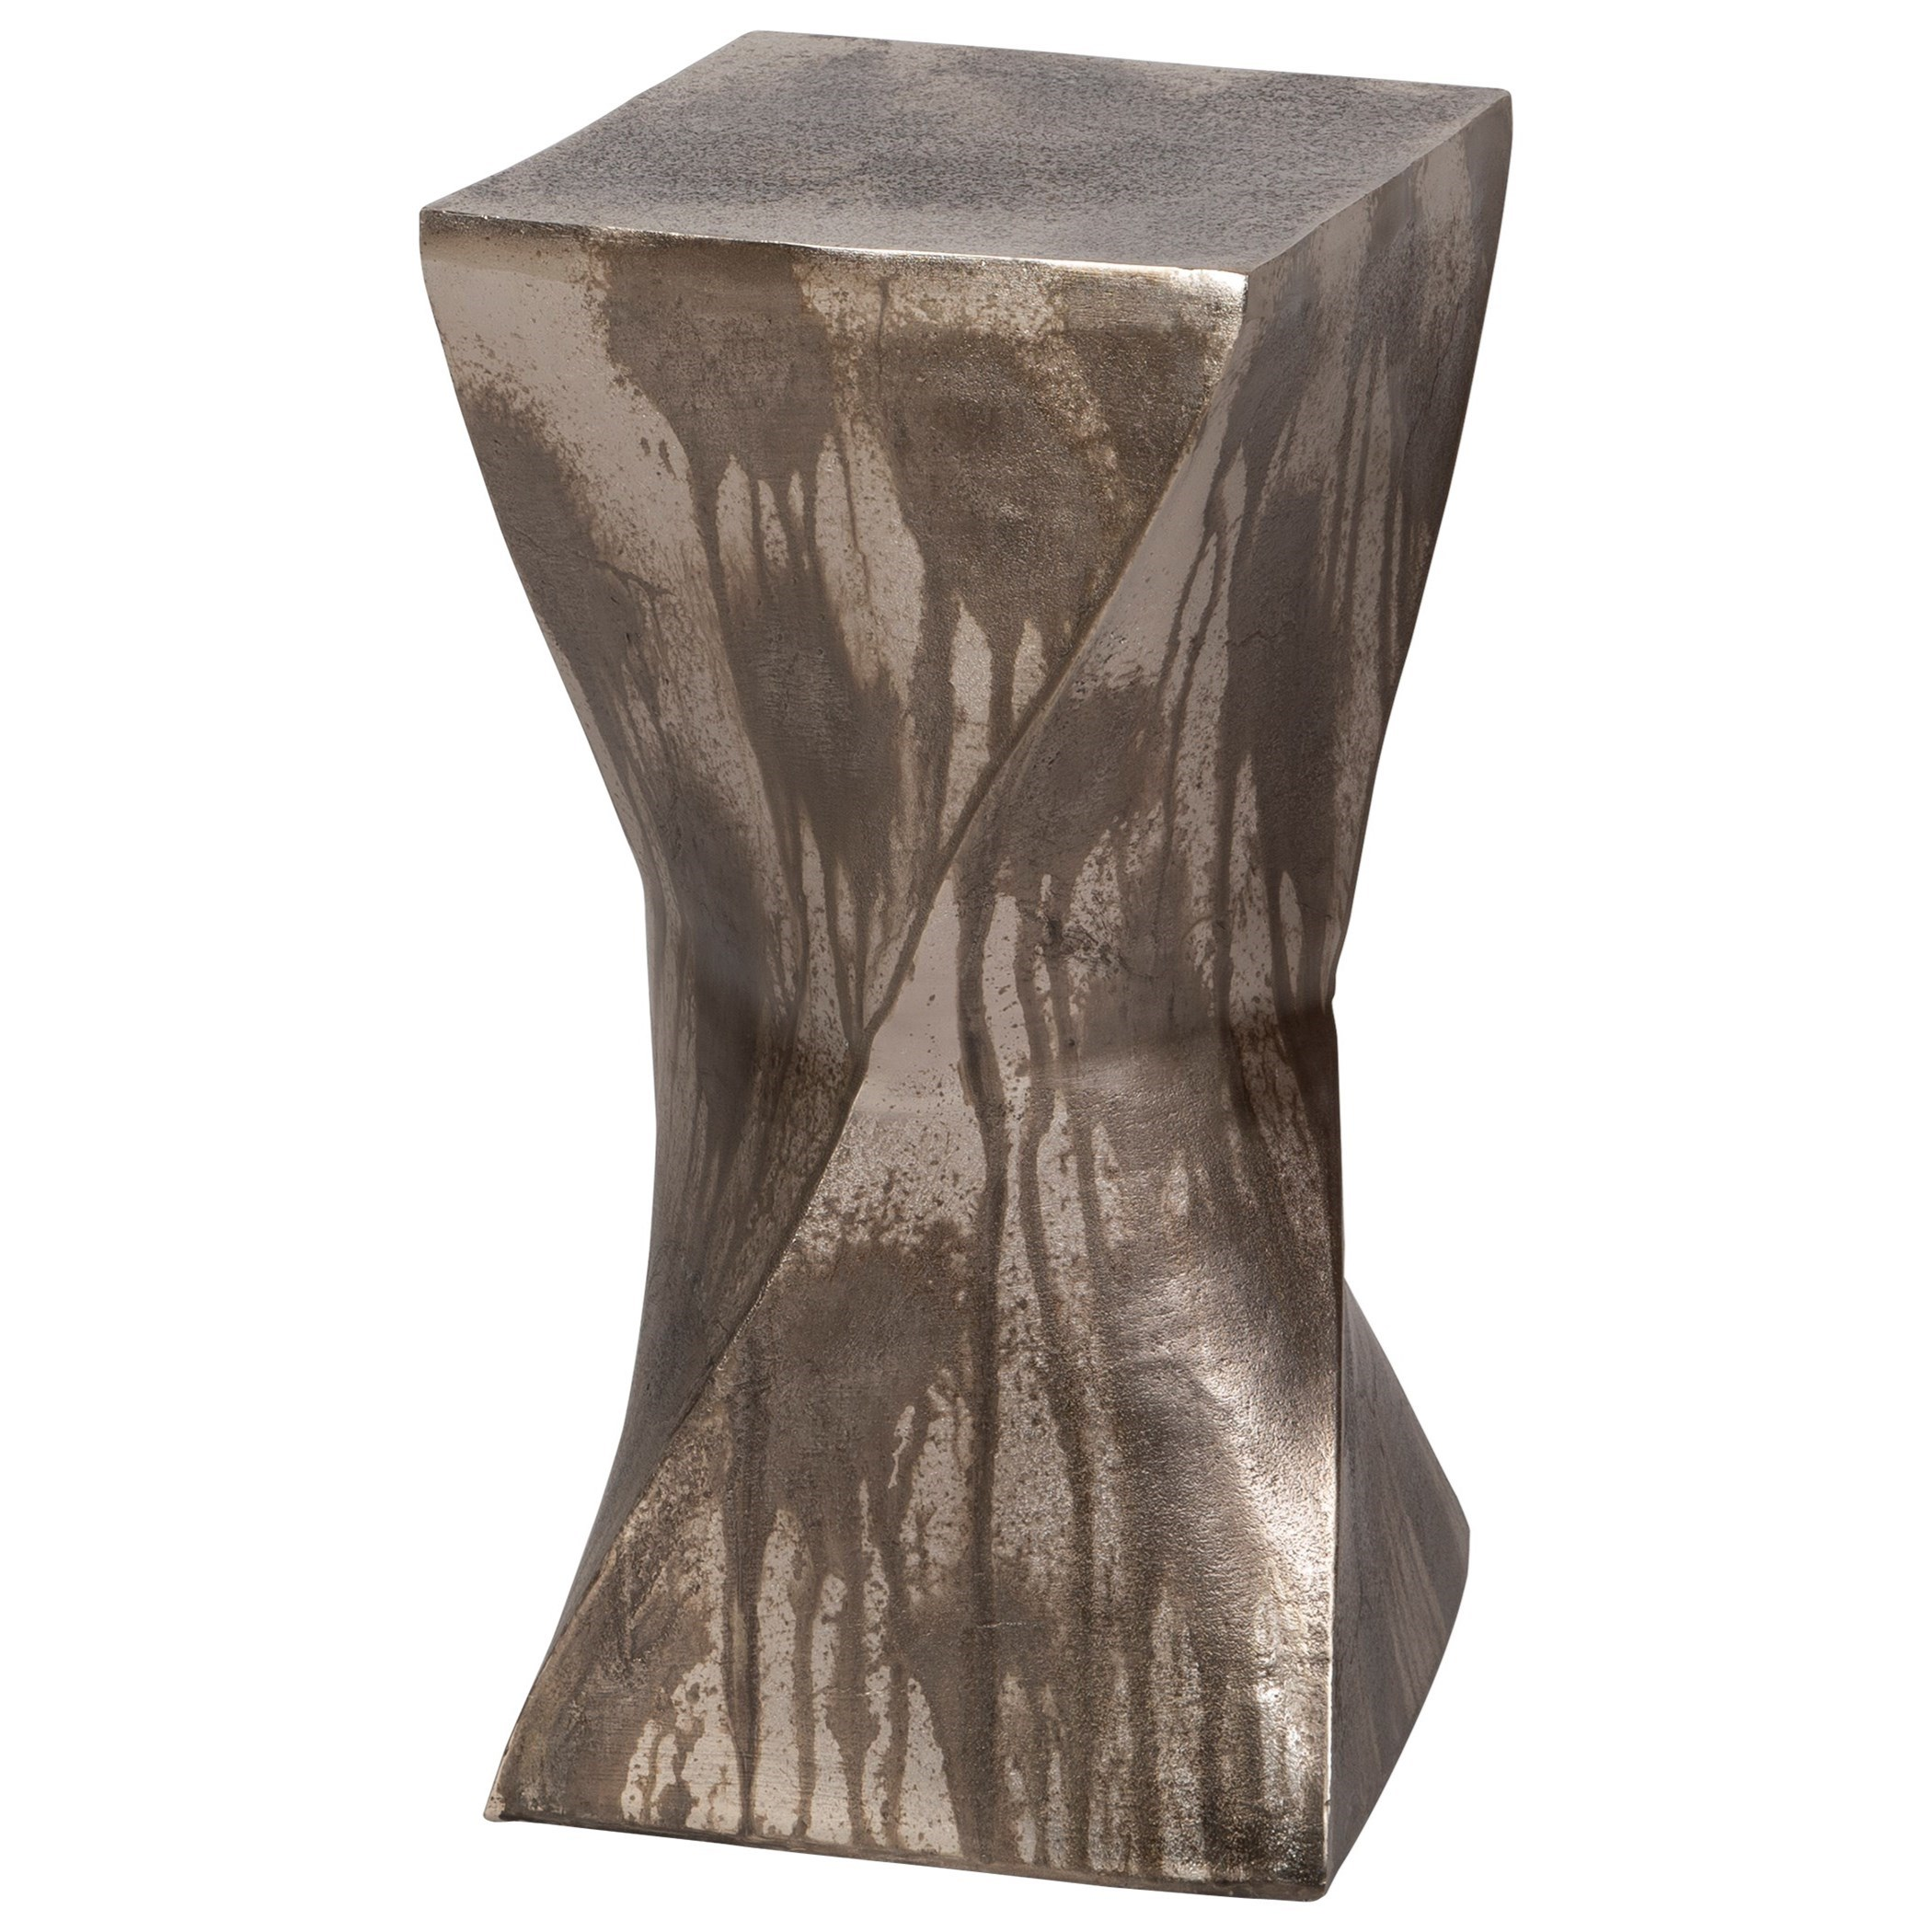 Accent Furniture - Occasional Tables Euphrates Accent Table by Uttermost at Factory Direct Furniture